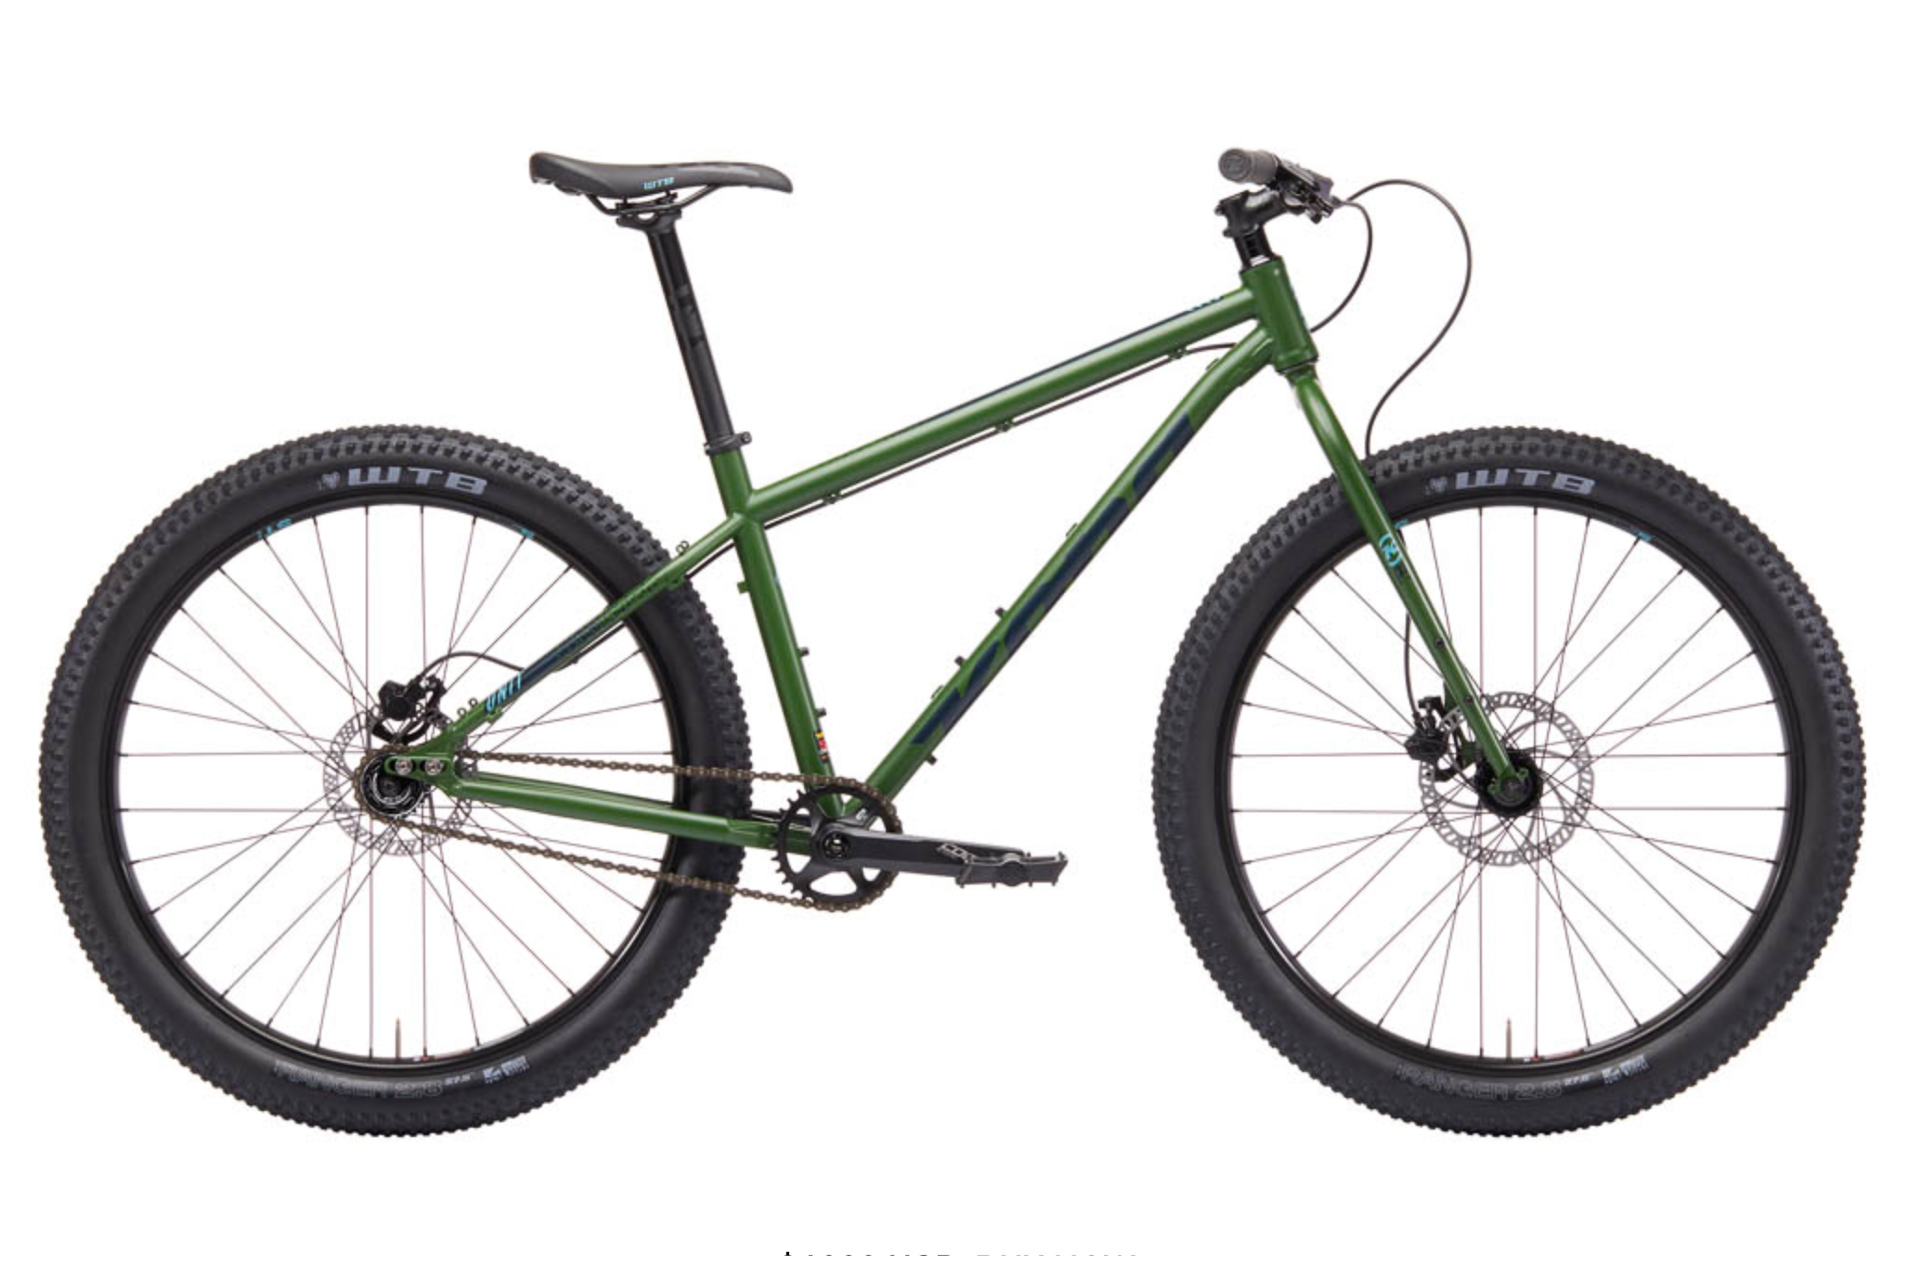 7ca54cd81a9 As a singlespeed fully rigid mountain bike, the Unit will turn most trails  into a marginally type-2 fun experience.